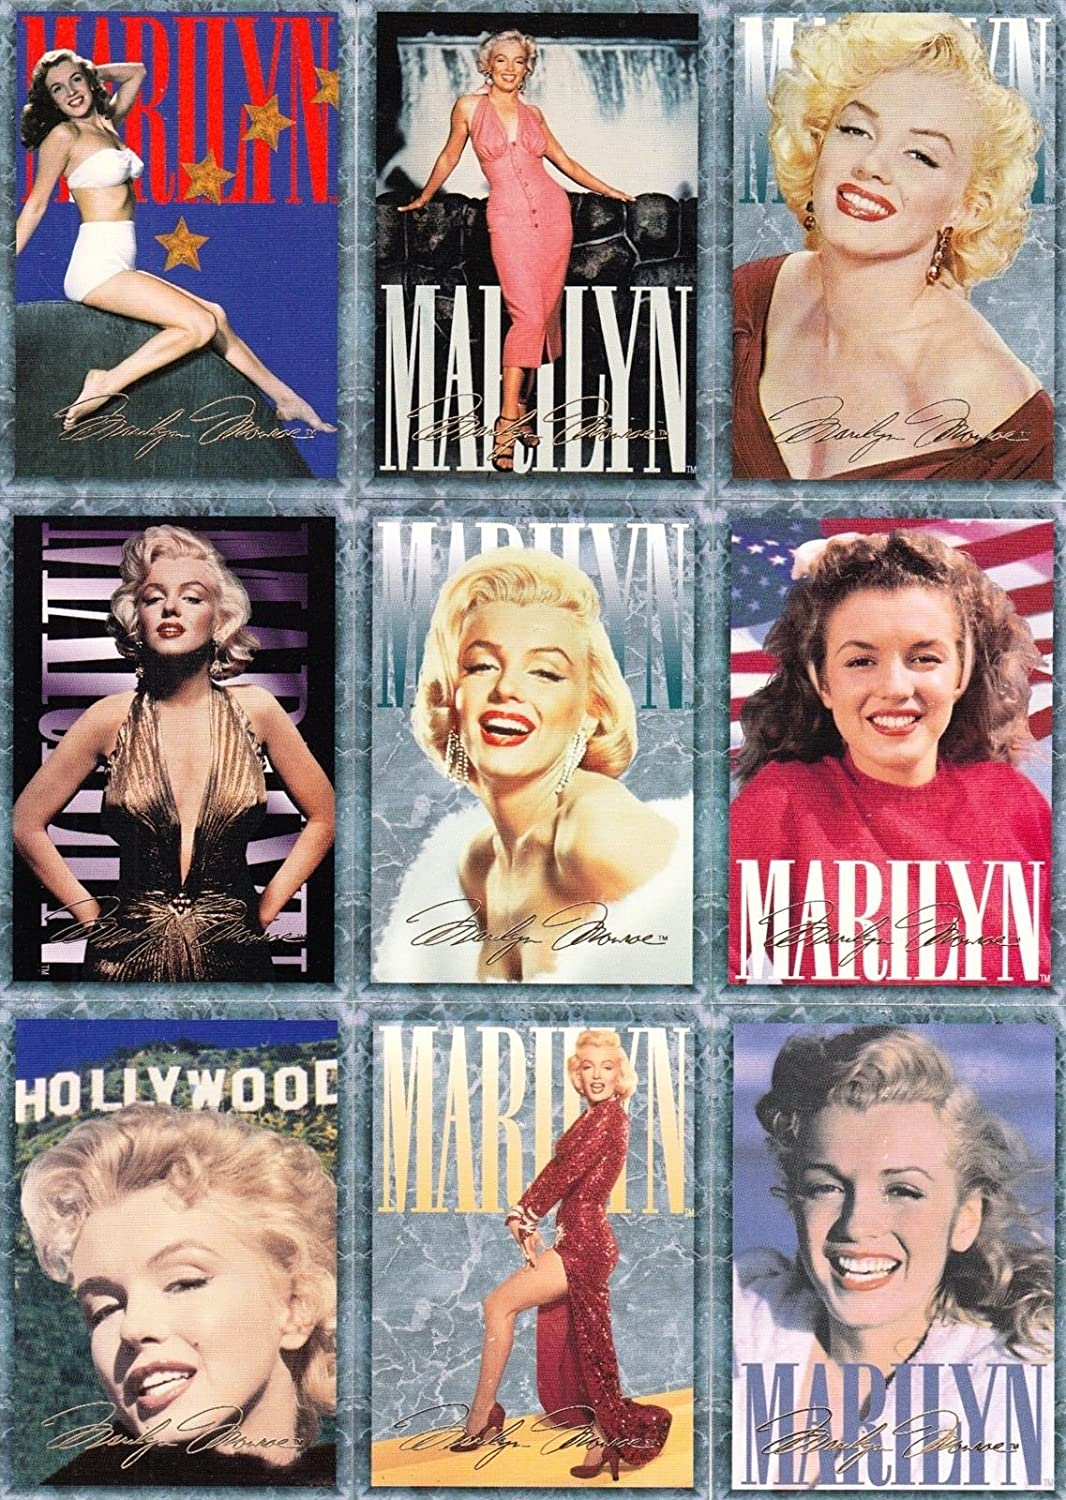 MARILYN MONROE SERIES 1 1993 SPORTS TIME COMPLETE BASE CARD SET OF 100